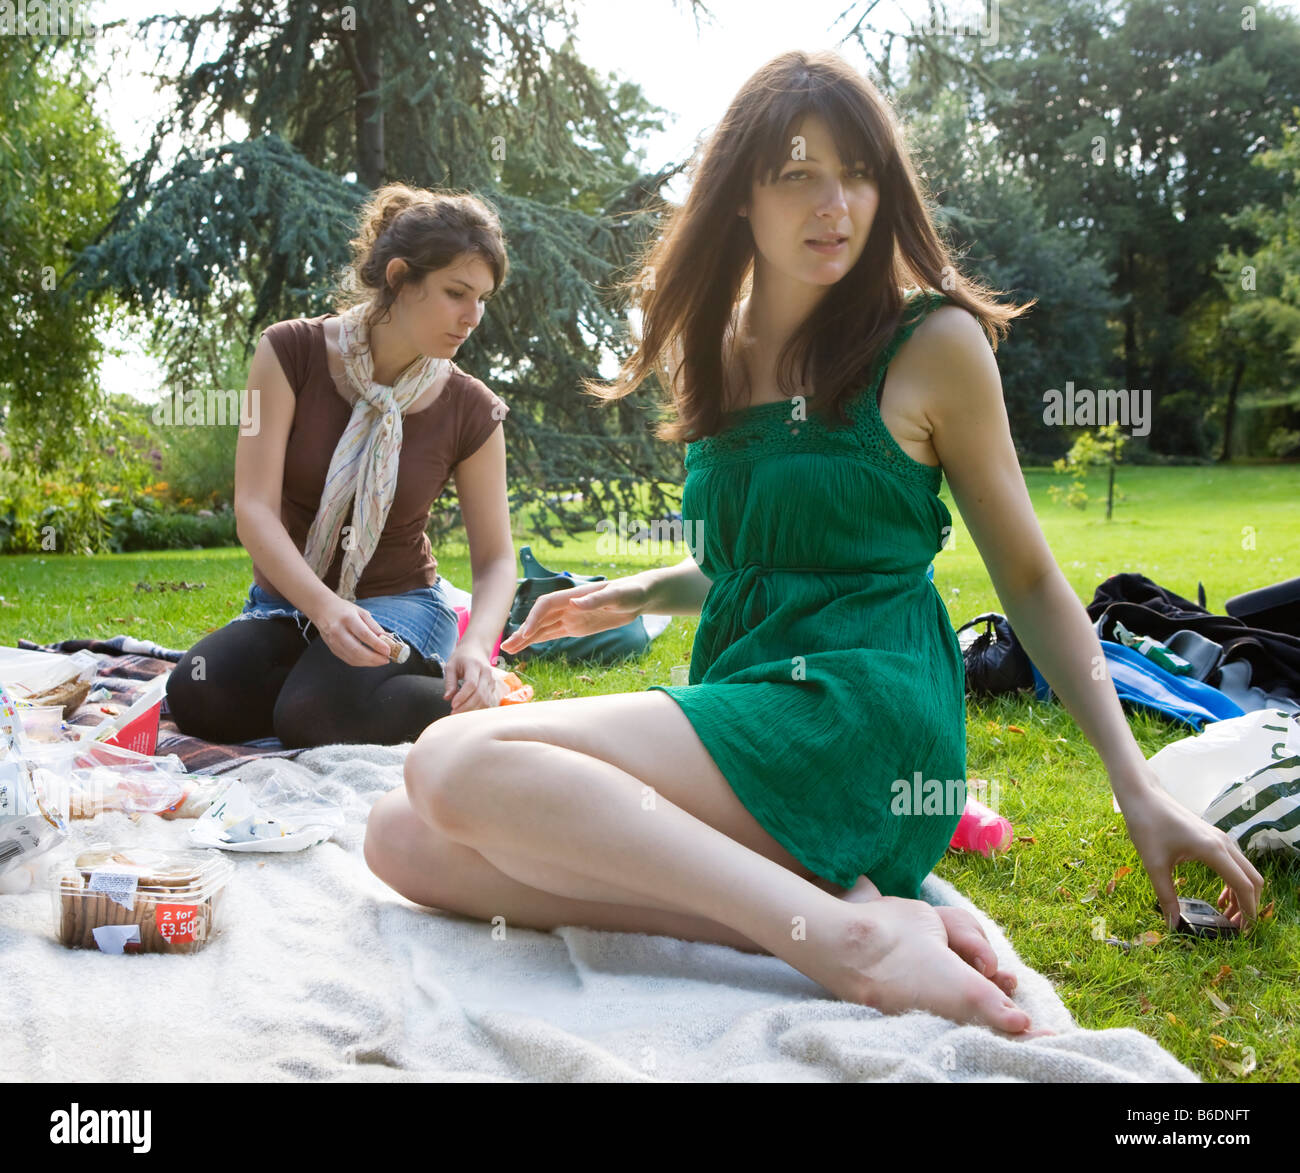 Two young women sitting down, having a picnic in Hyde Park (London, England) - Stock Image